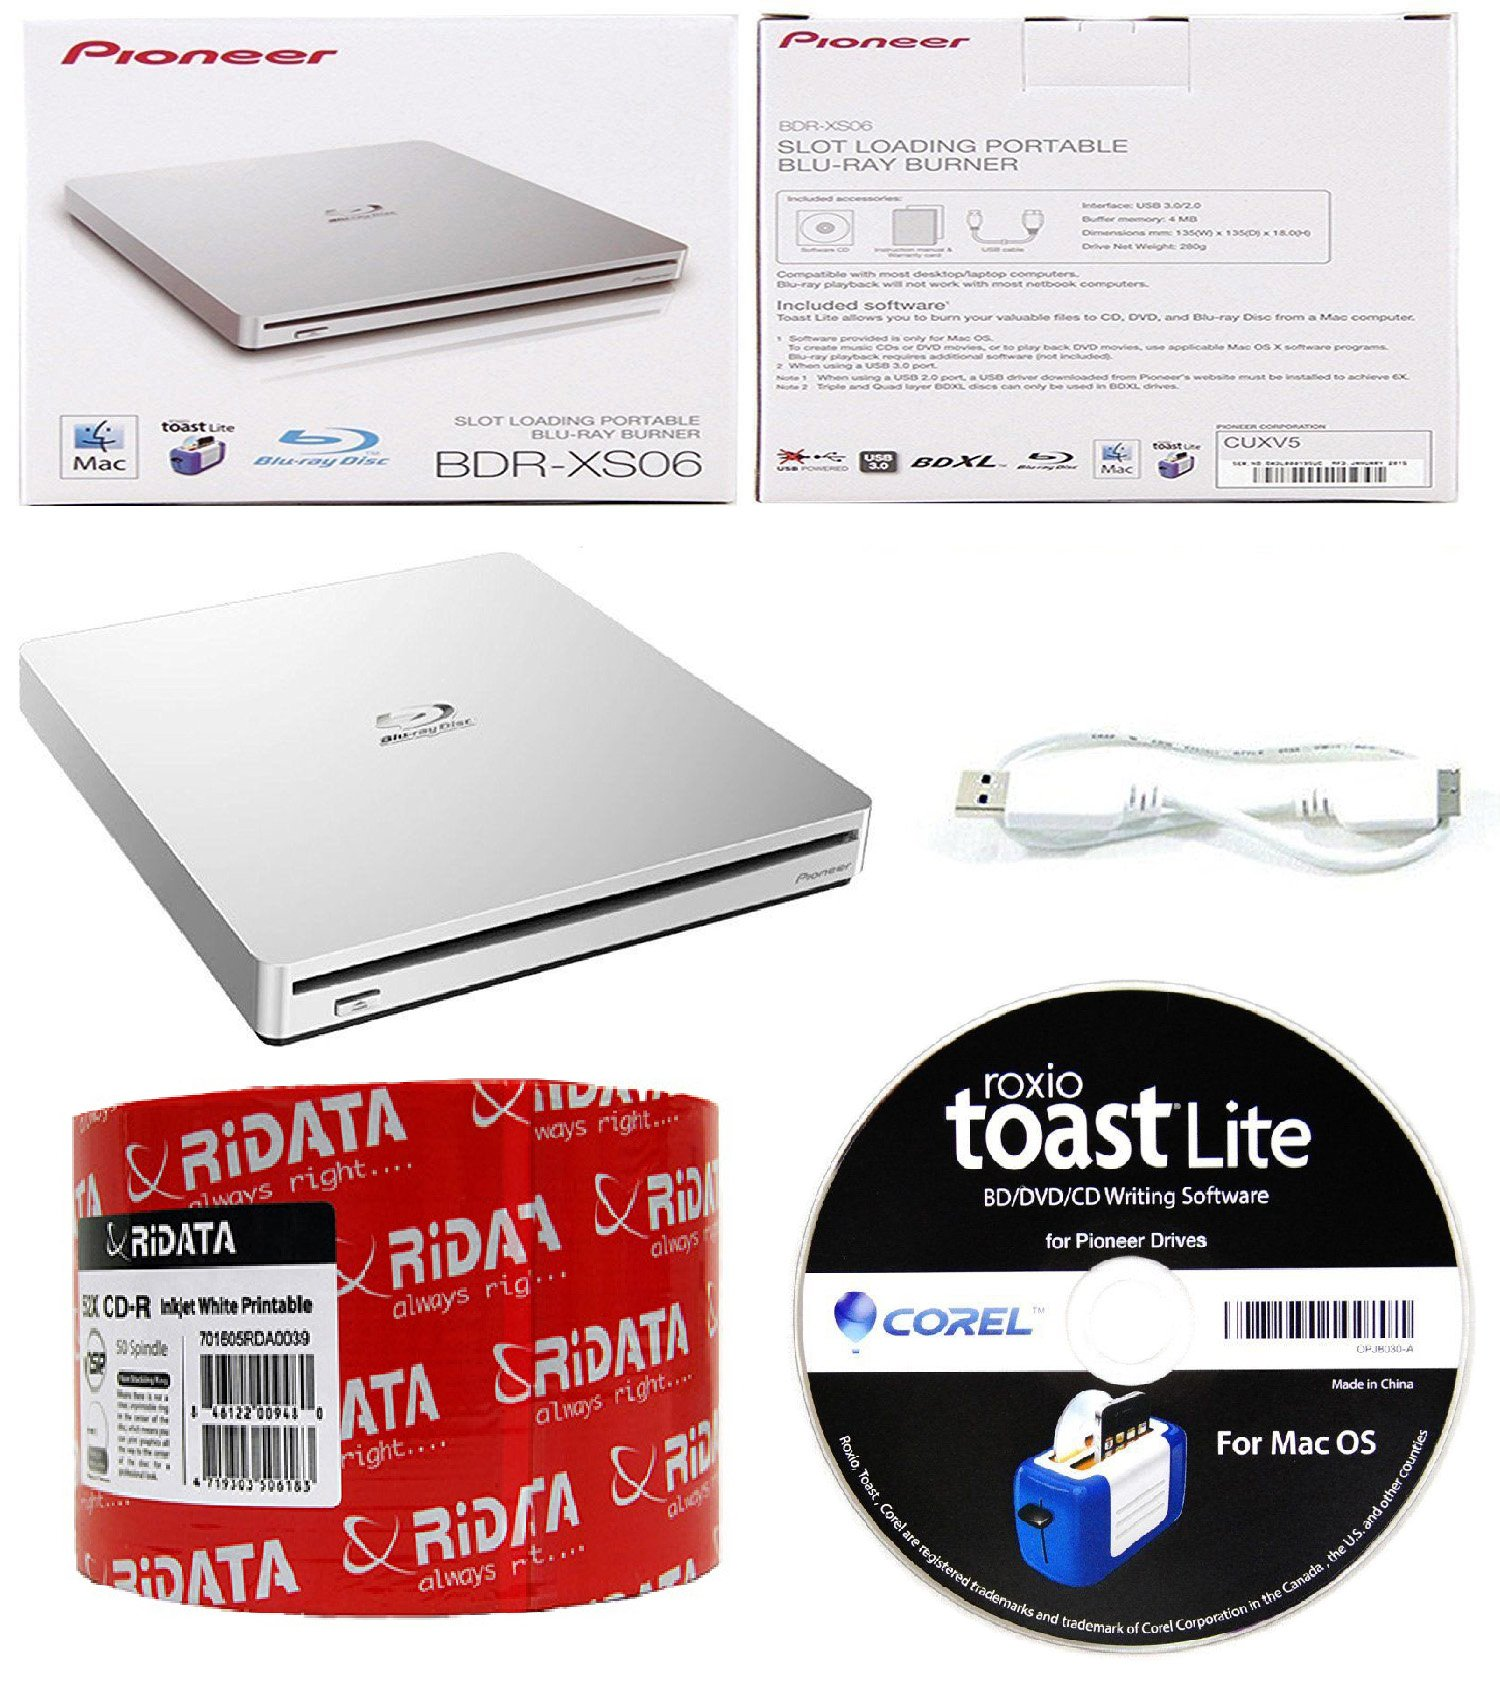 Pioneer 6x BDR-XS06 Slim Slot Portable External Blu-ray BDXL Burner, Roxio Toast Lite Software and USB Cable Bundle with 50pk CD-R RiDATA White Inkjet Printable